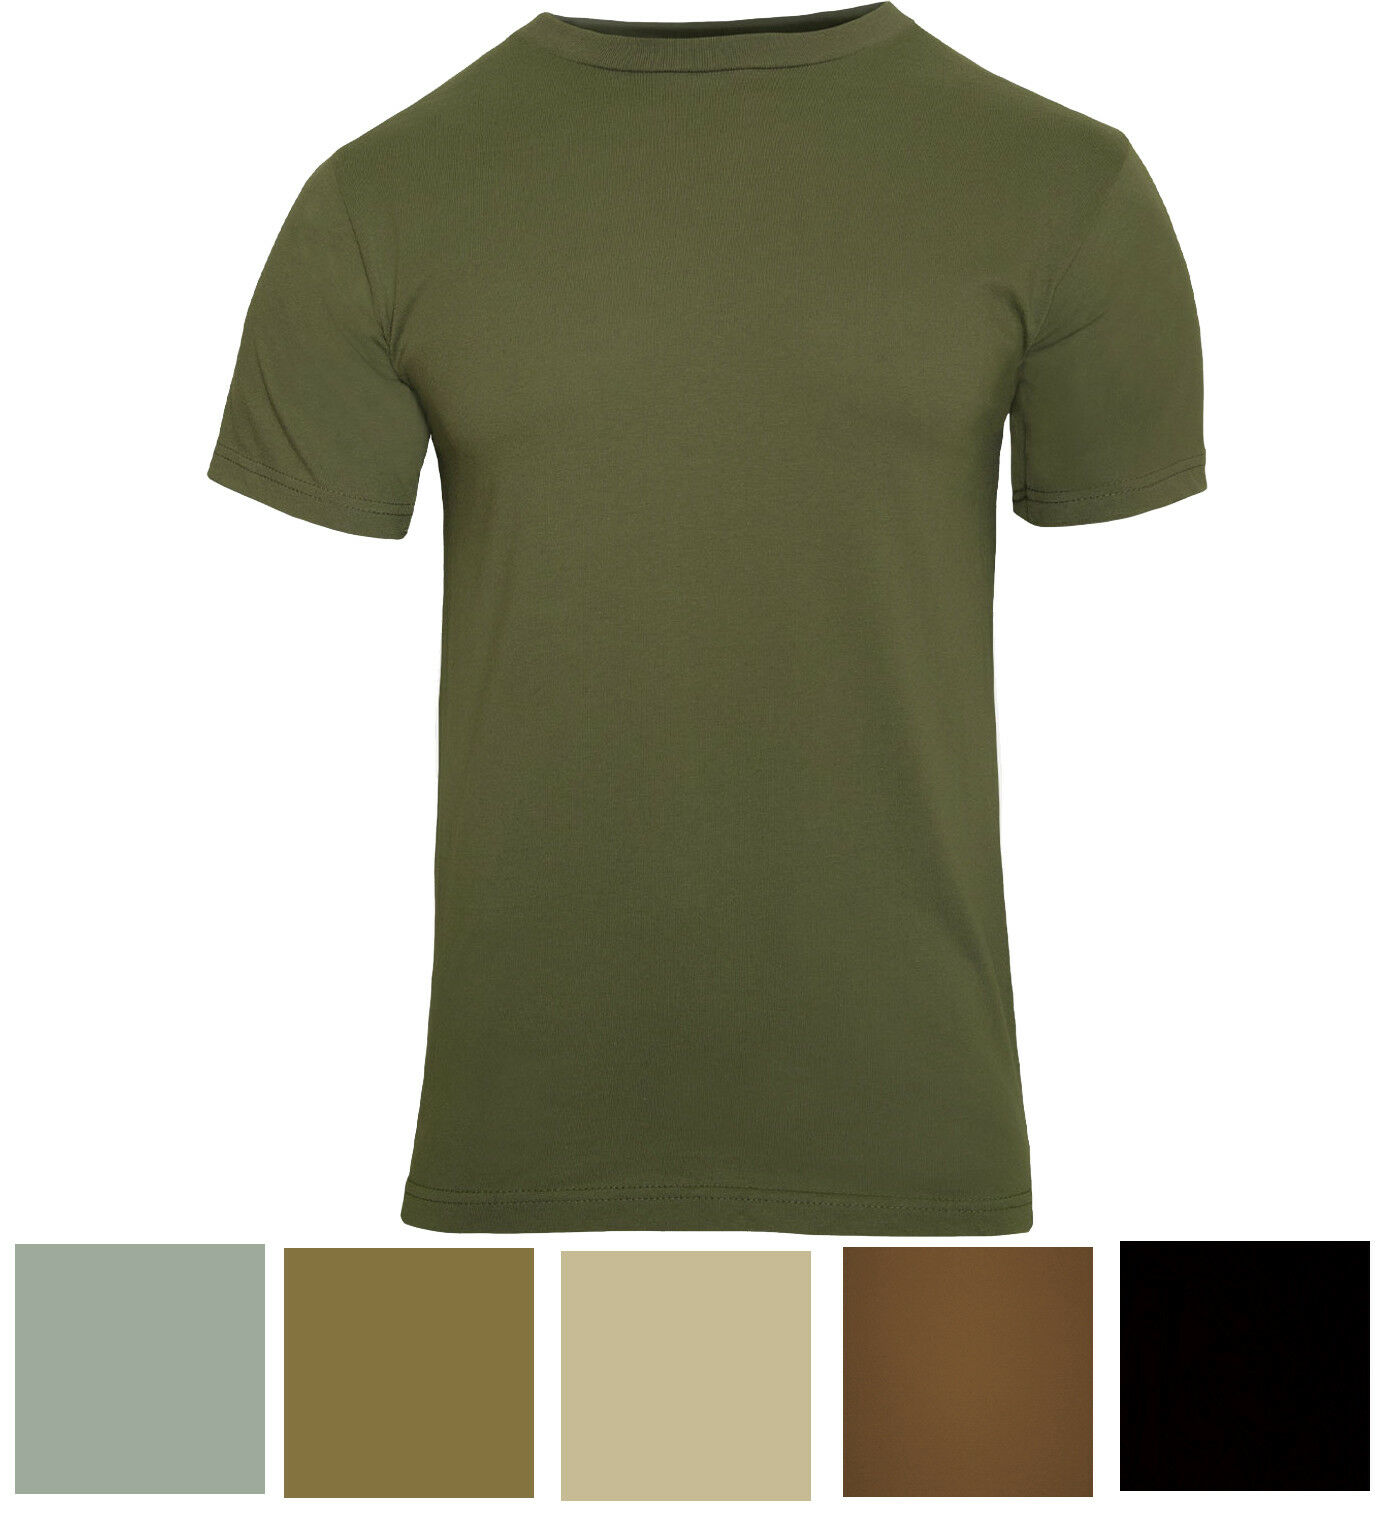 Solid Color Tactical T-Shirt Plain Army Military Outdoors Camp Short Sleeve Tee Clothing, Shoes & Accessories